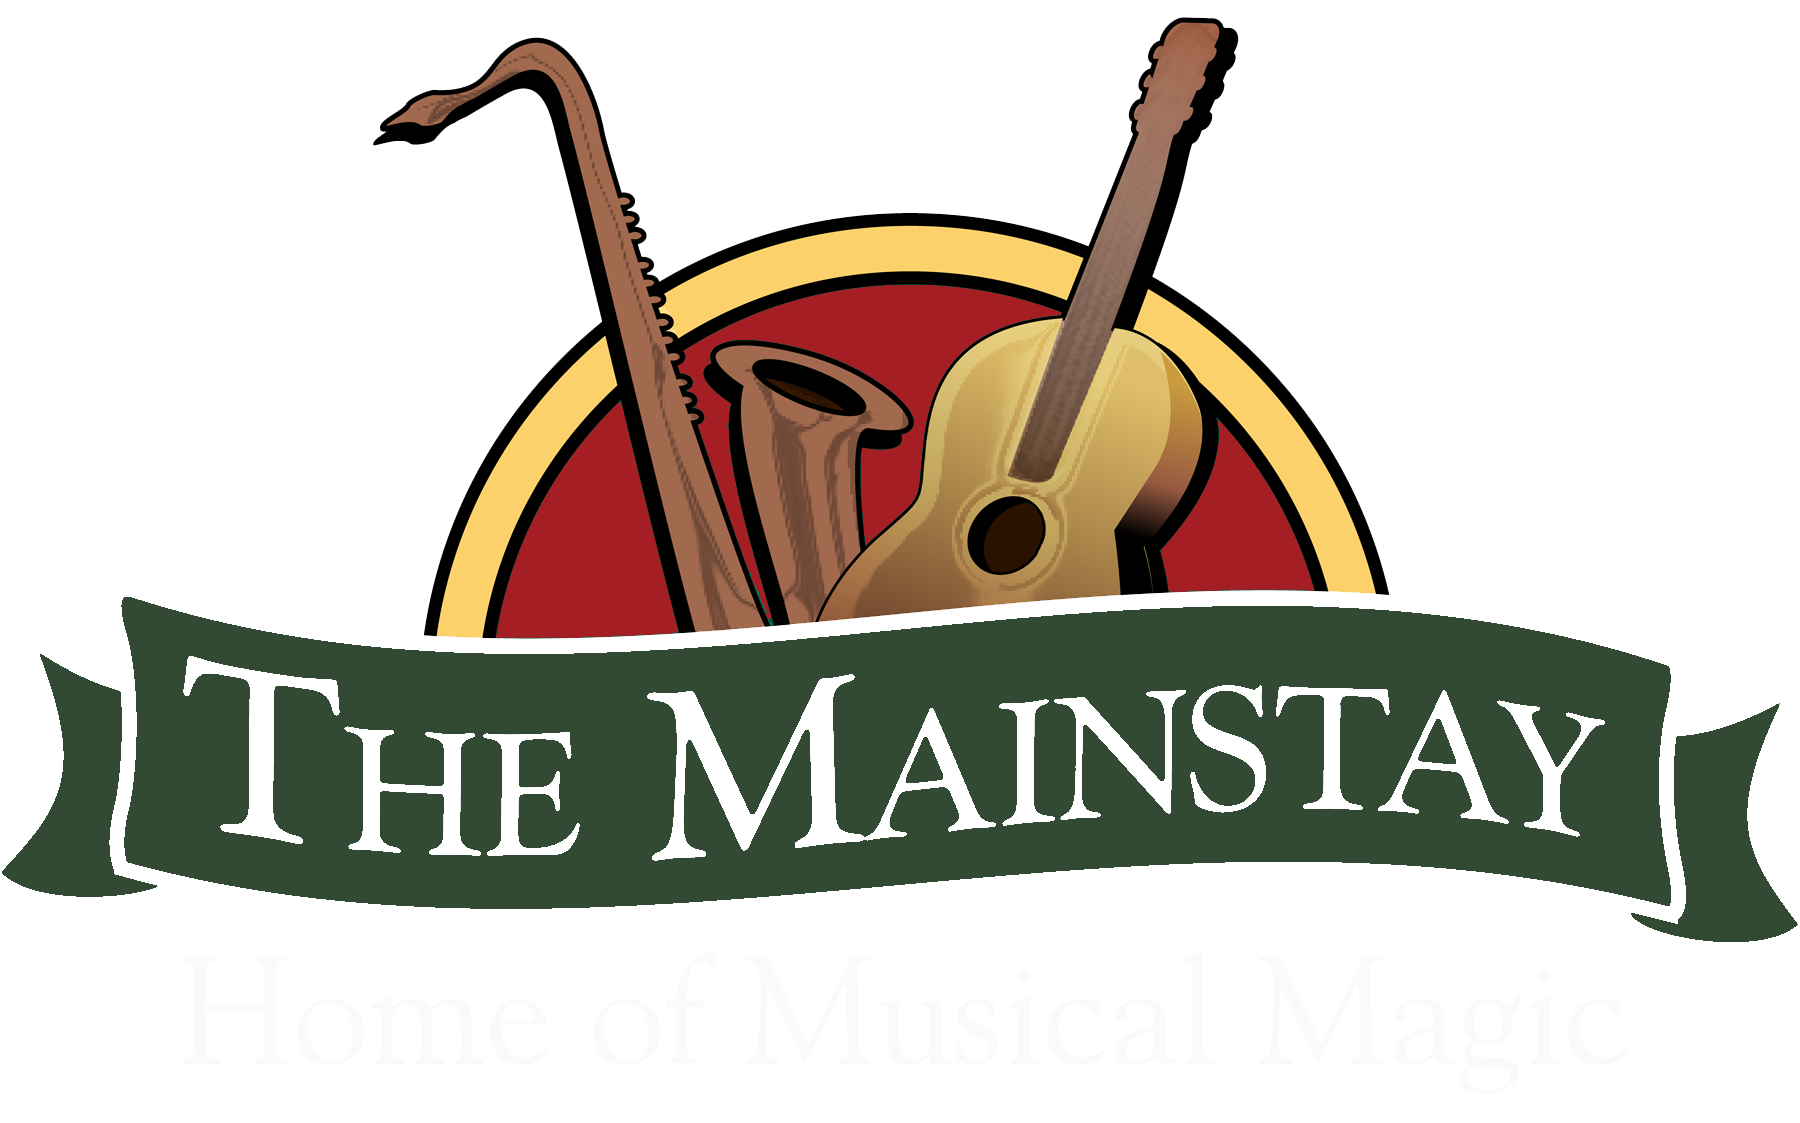 Jazz clipart musical night. Fall fest the mainstay